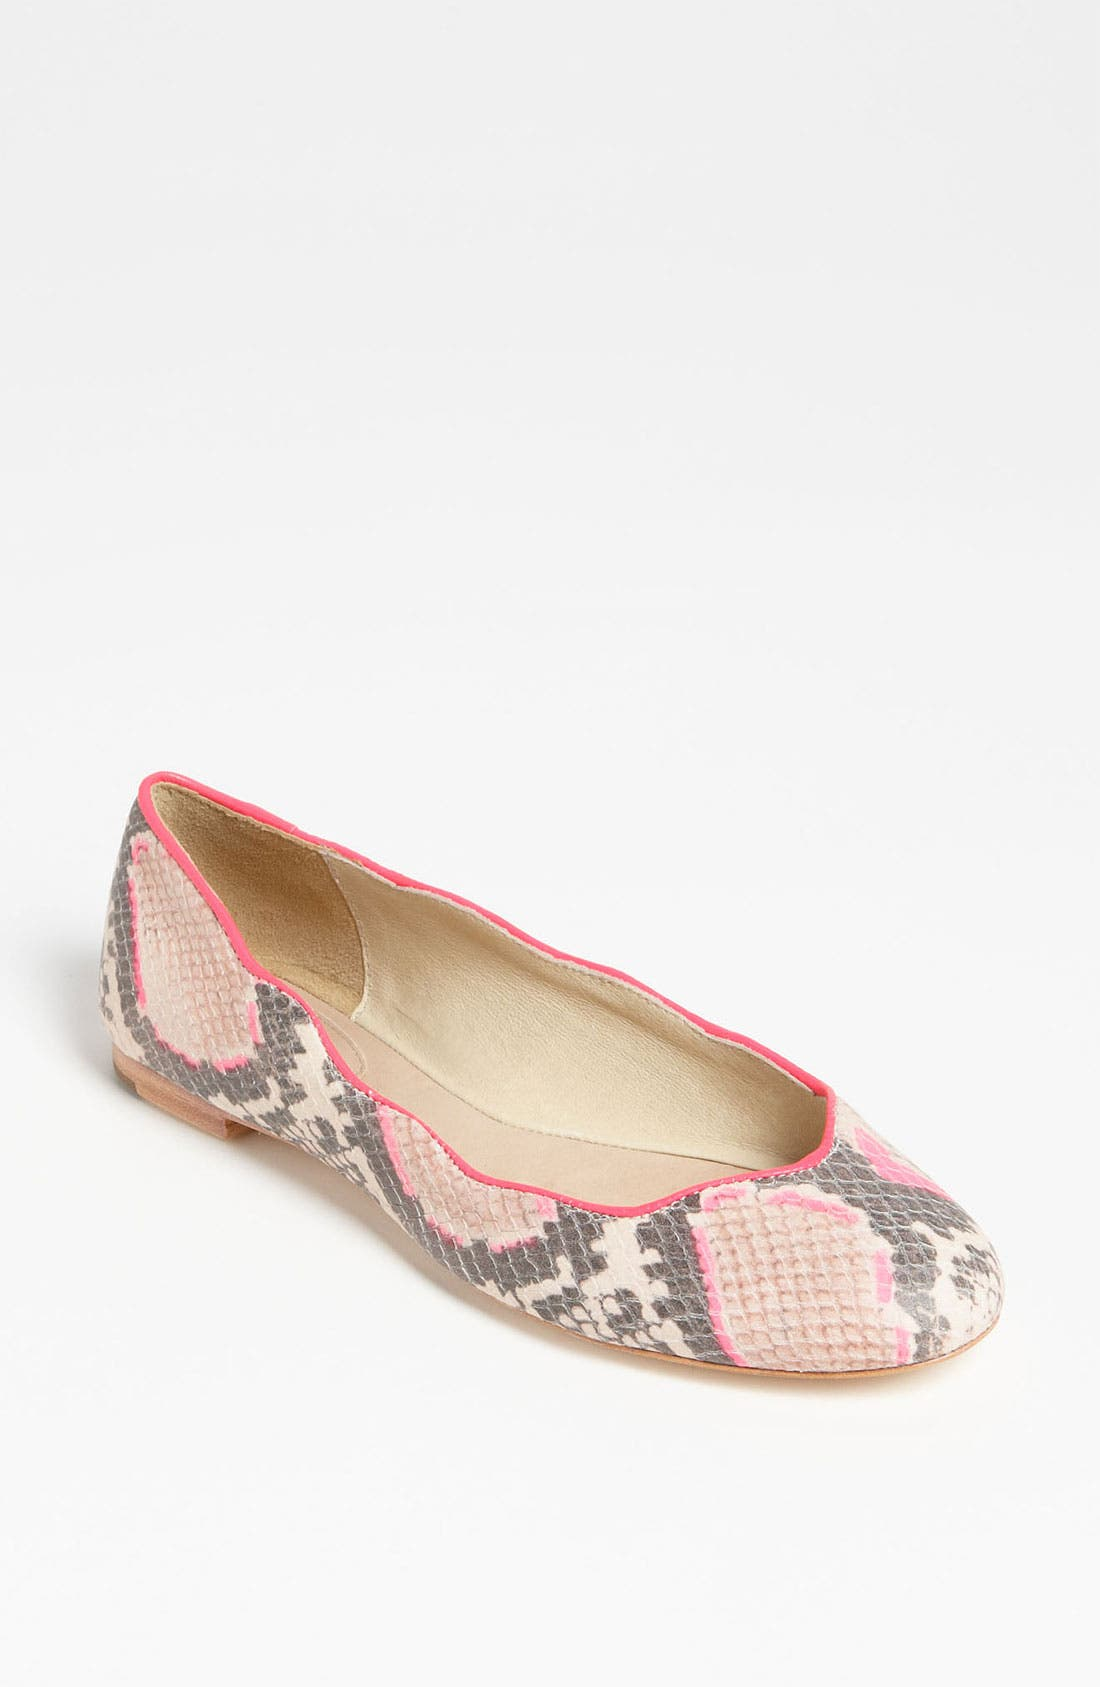 Main Image - Juicy Couture 'Jailyn' Flat